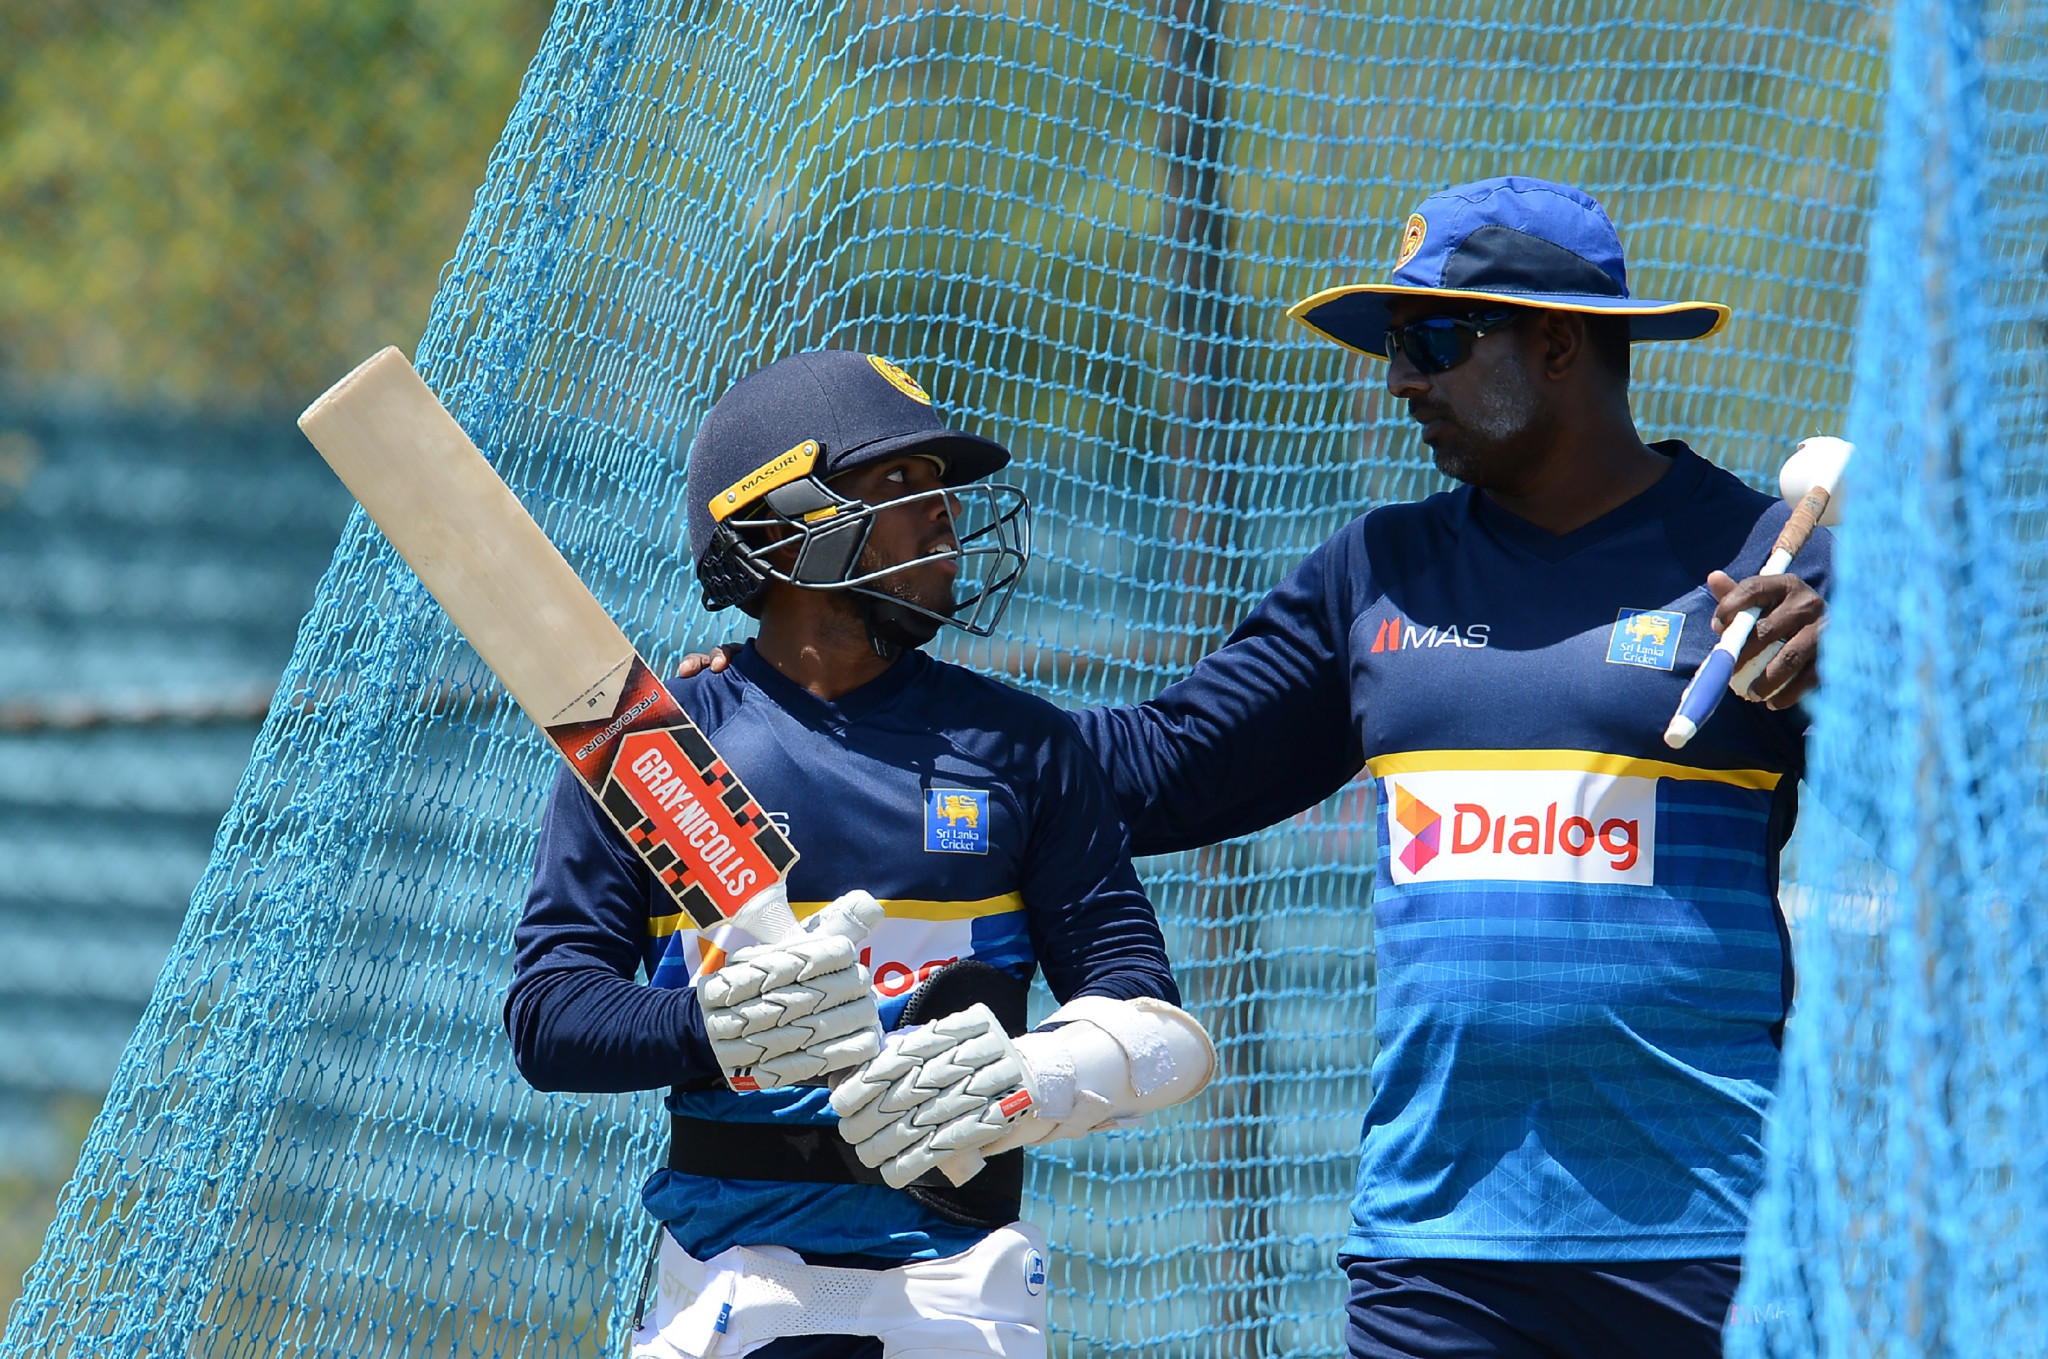 Gunawardene becomes latest former Sri Lanka cricketer charged with match-fixing by ICC